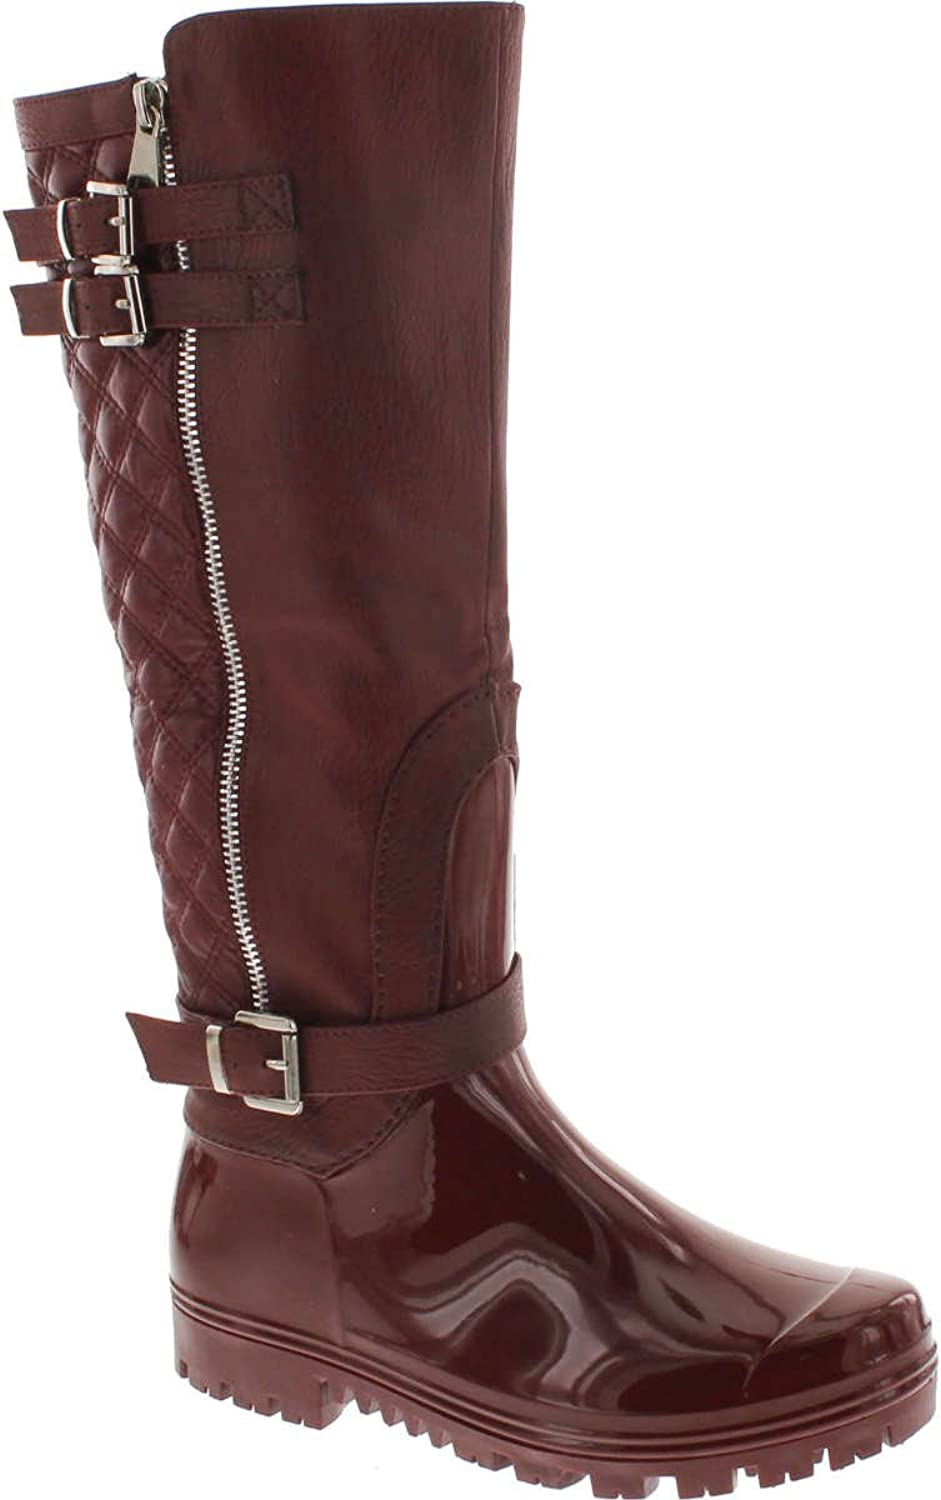 Forever Link Women's Carrie-67 Motorcyle Quilted Buckle Boots,Wine-67,7